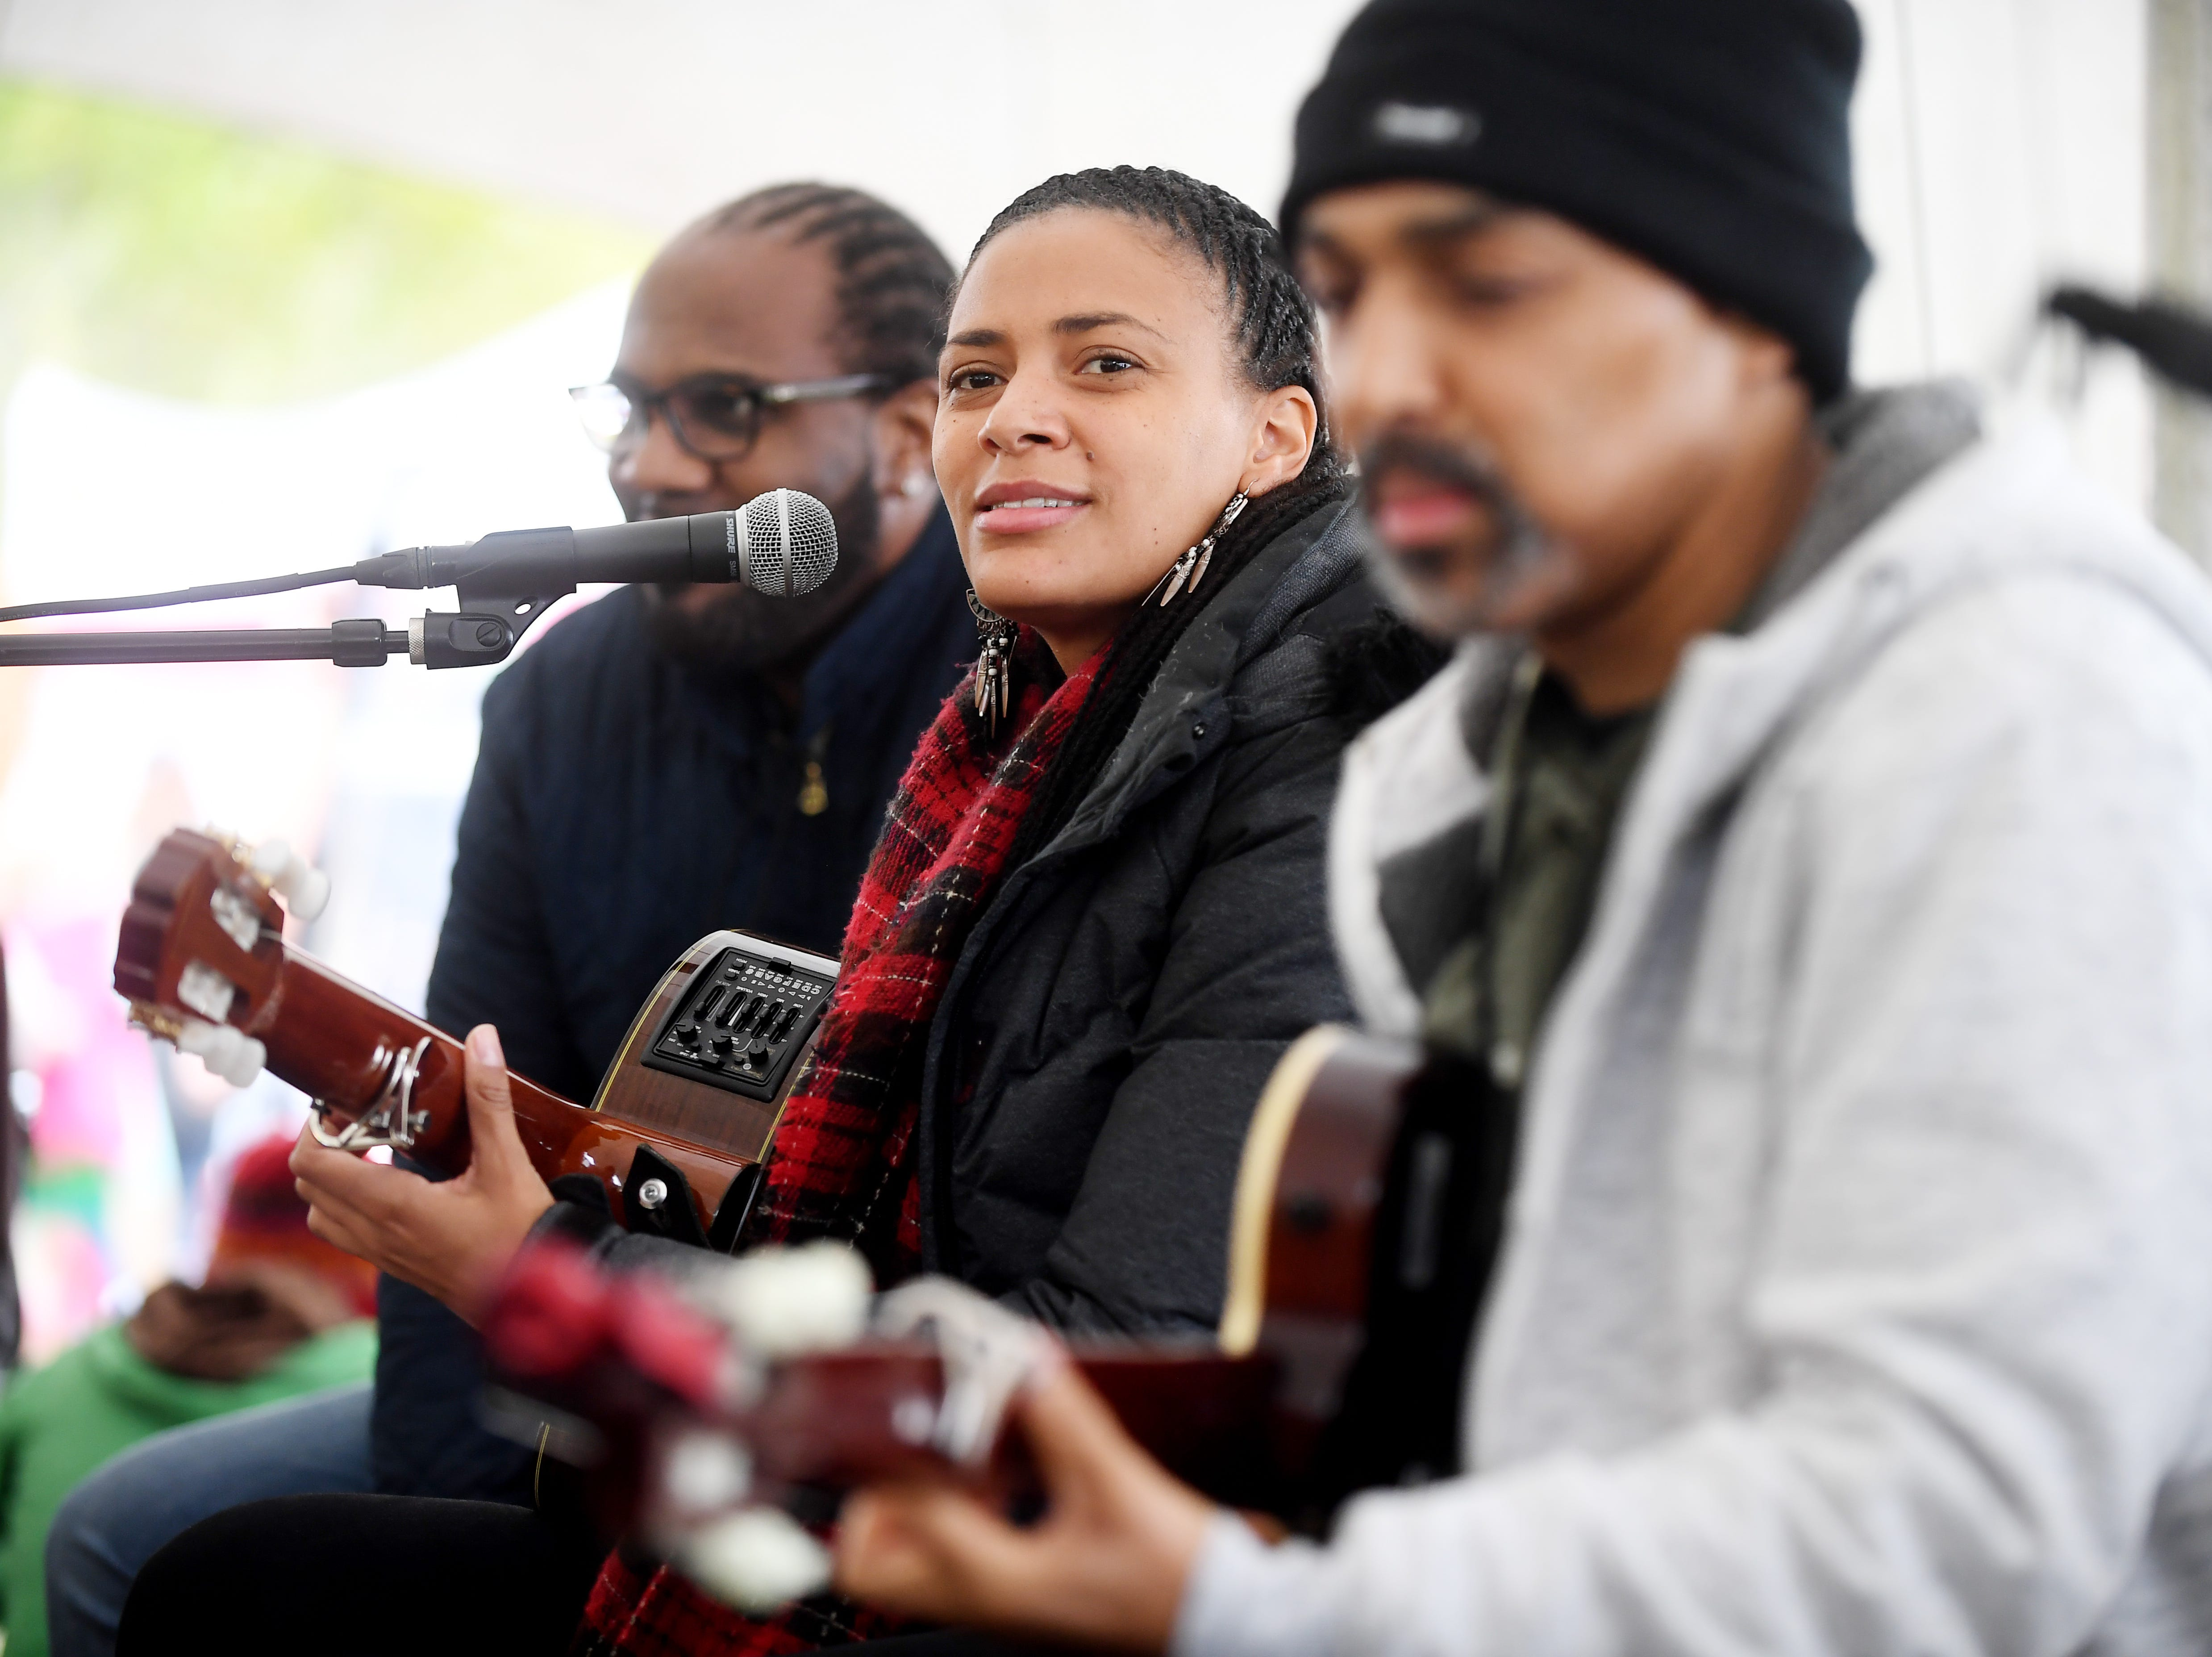 Sona Jobarteh performs at the 47th Lake Eden Arts Festival in Black Mountain Oct. 20, 2018.